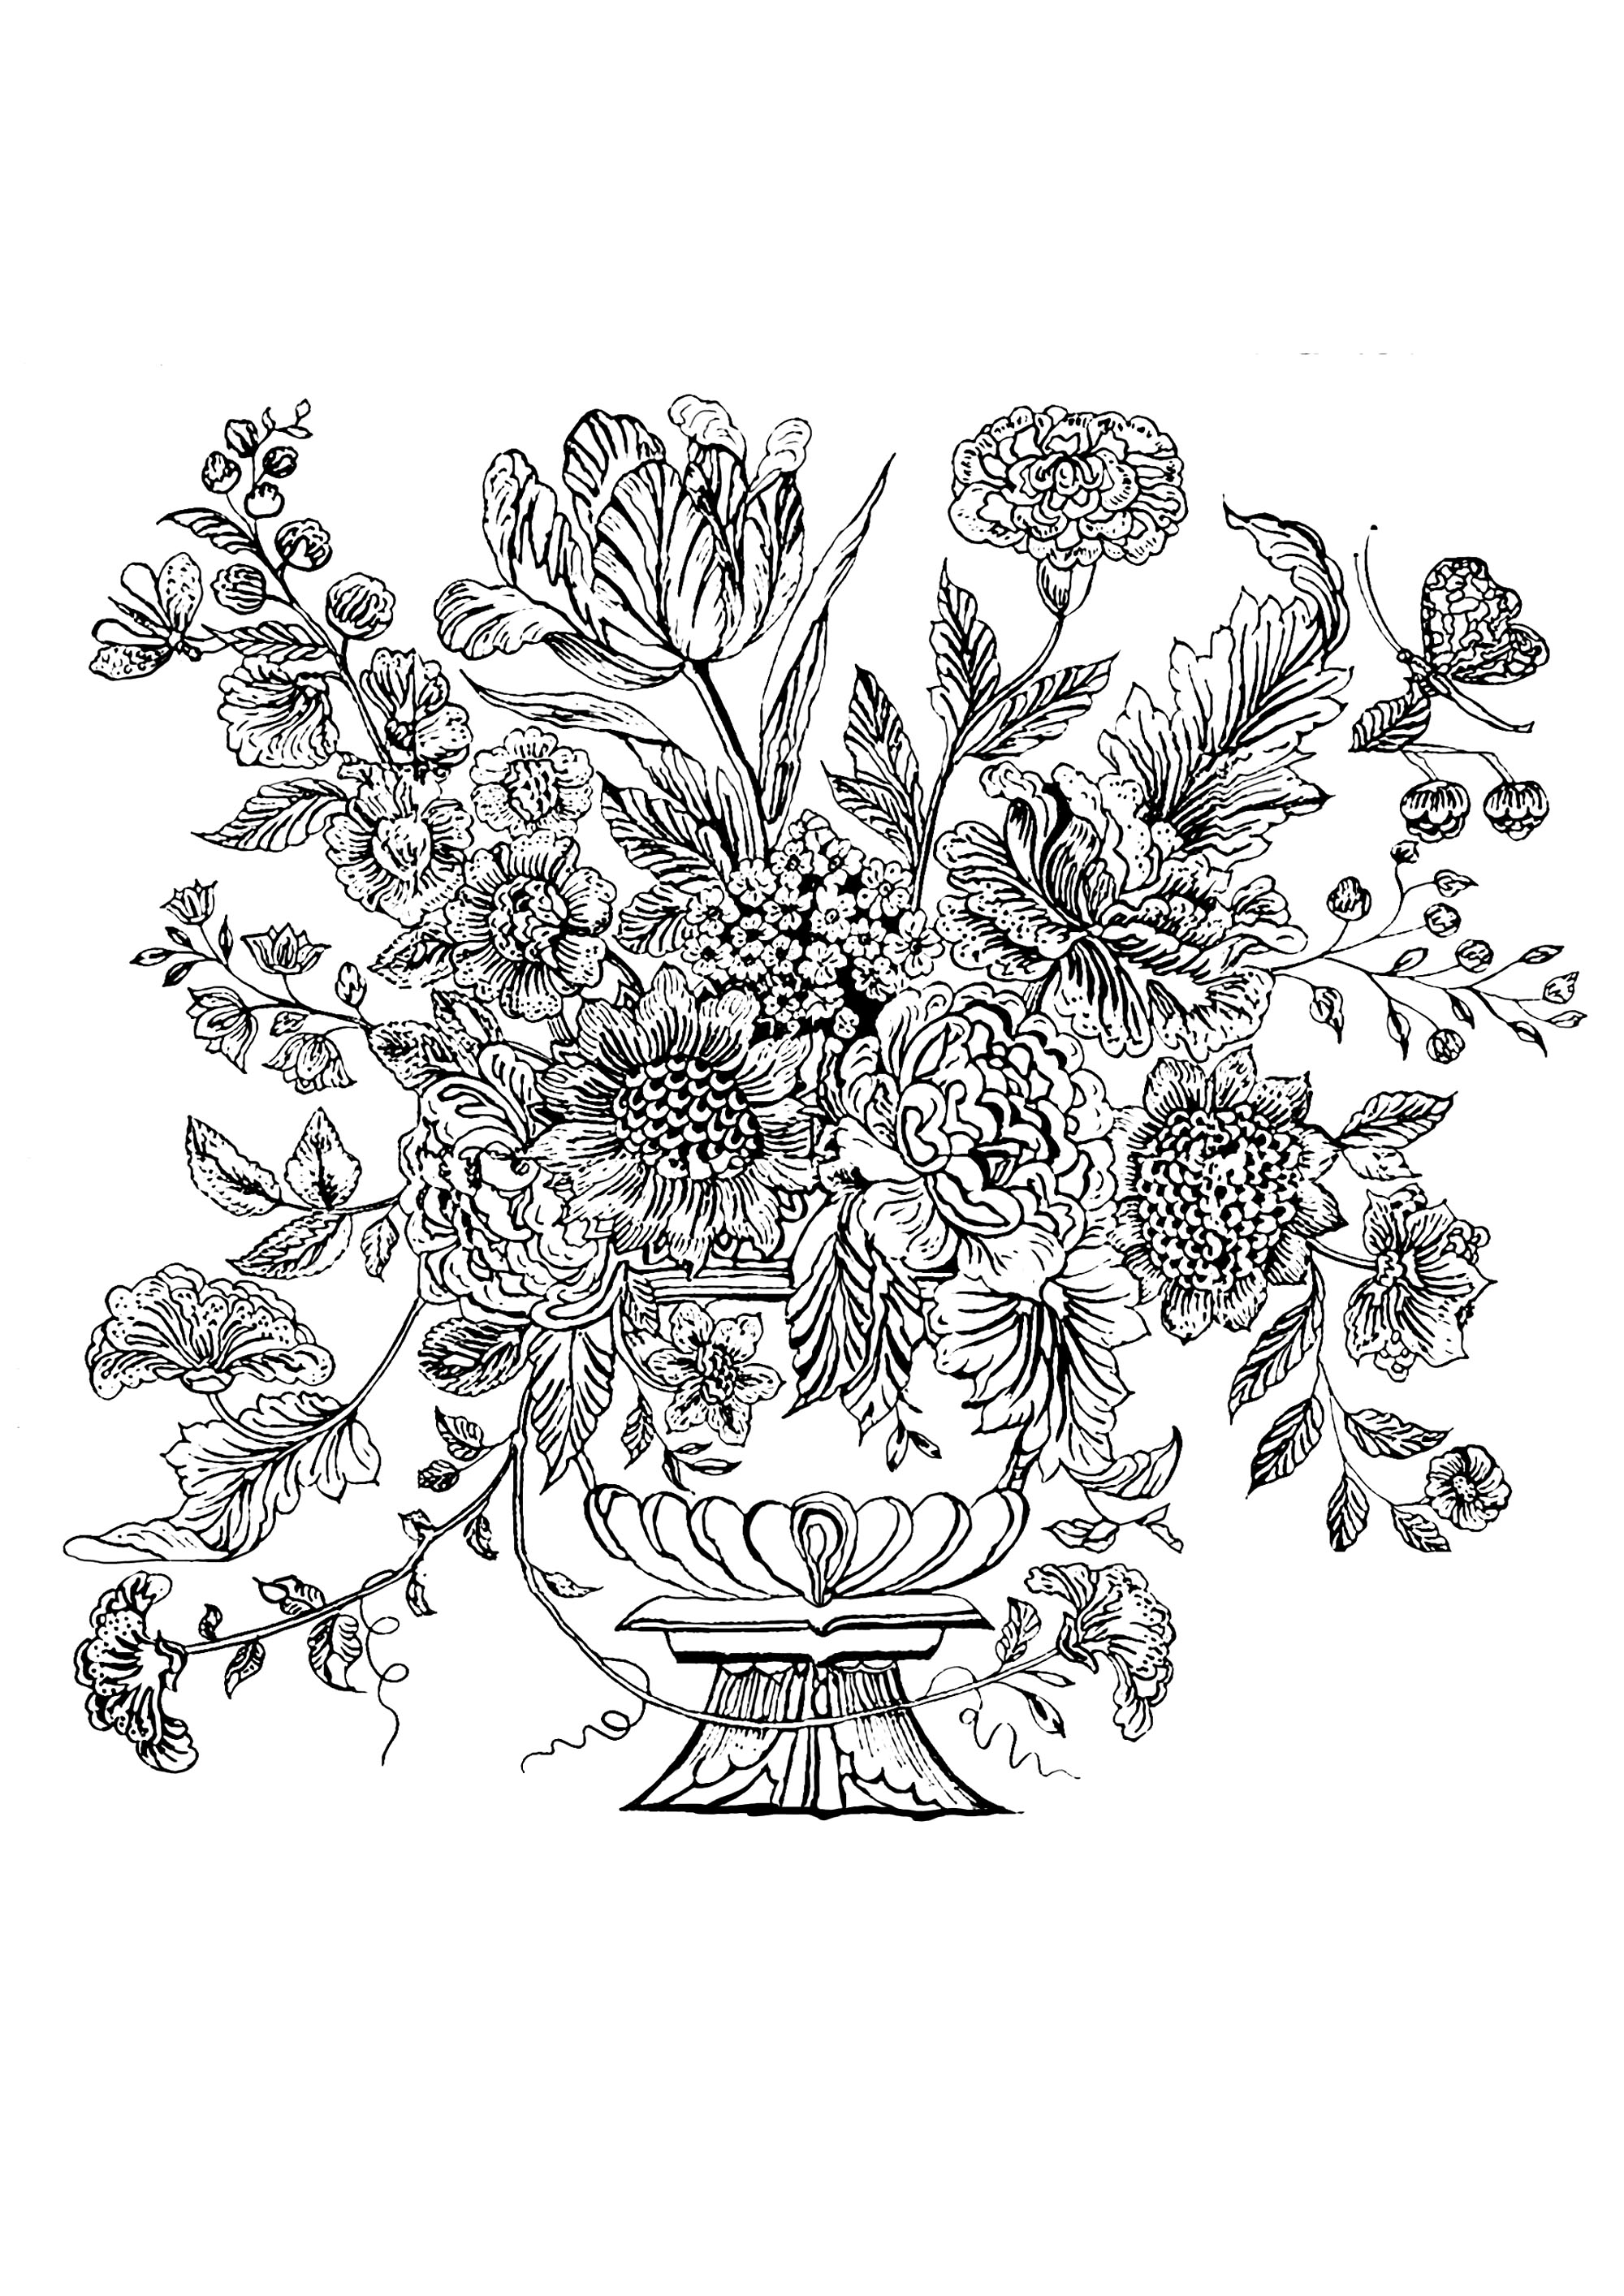 Coloring page inspired by a Mural Tile of 1740 from Netherlands, with a Flowered vase